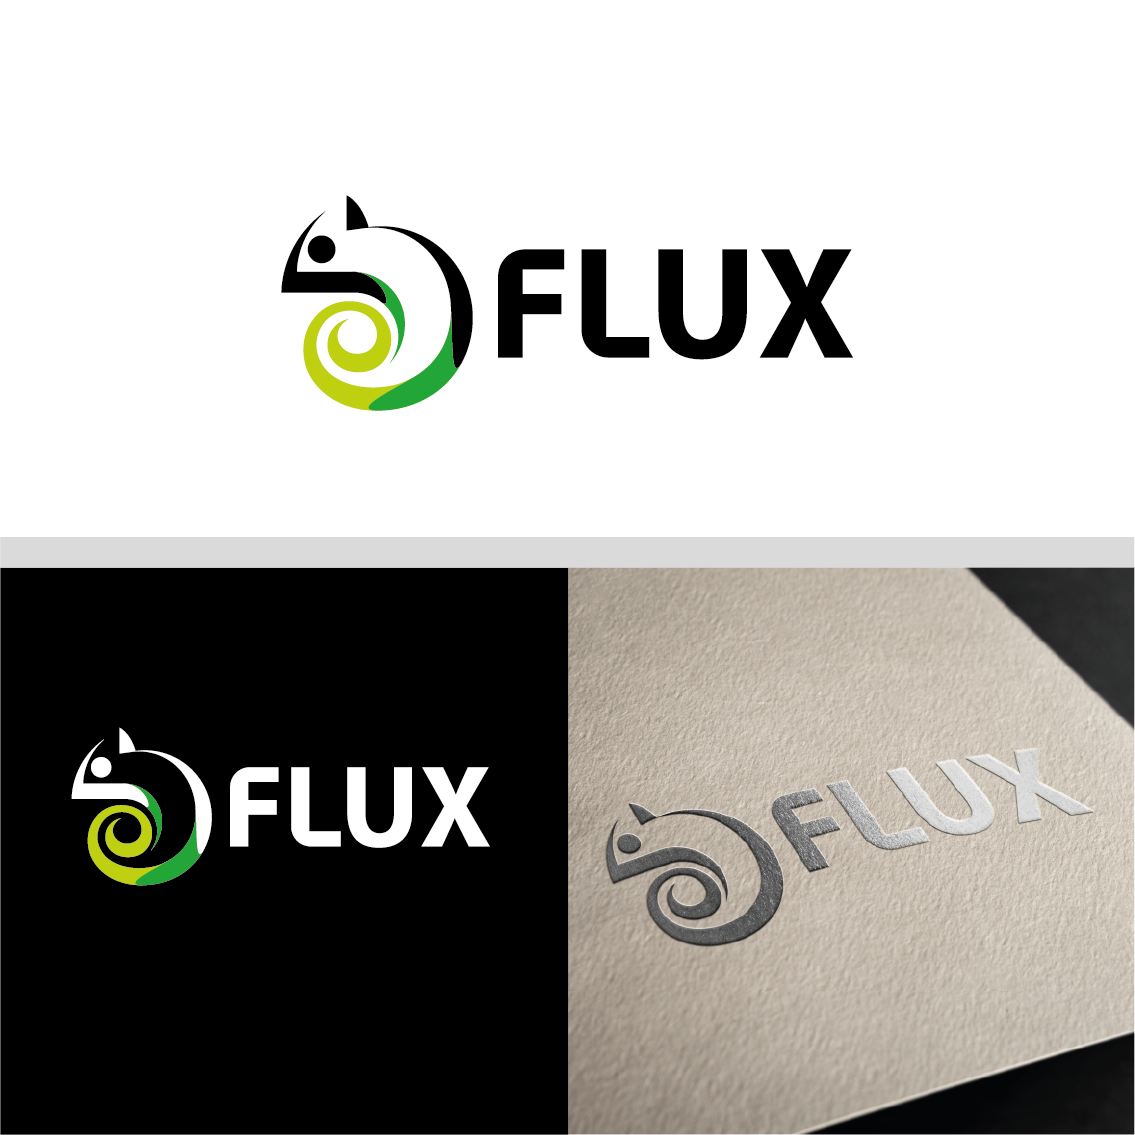 Flux - The future of supply chain in cannabis! Want to be part of the solution?